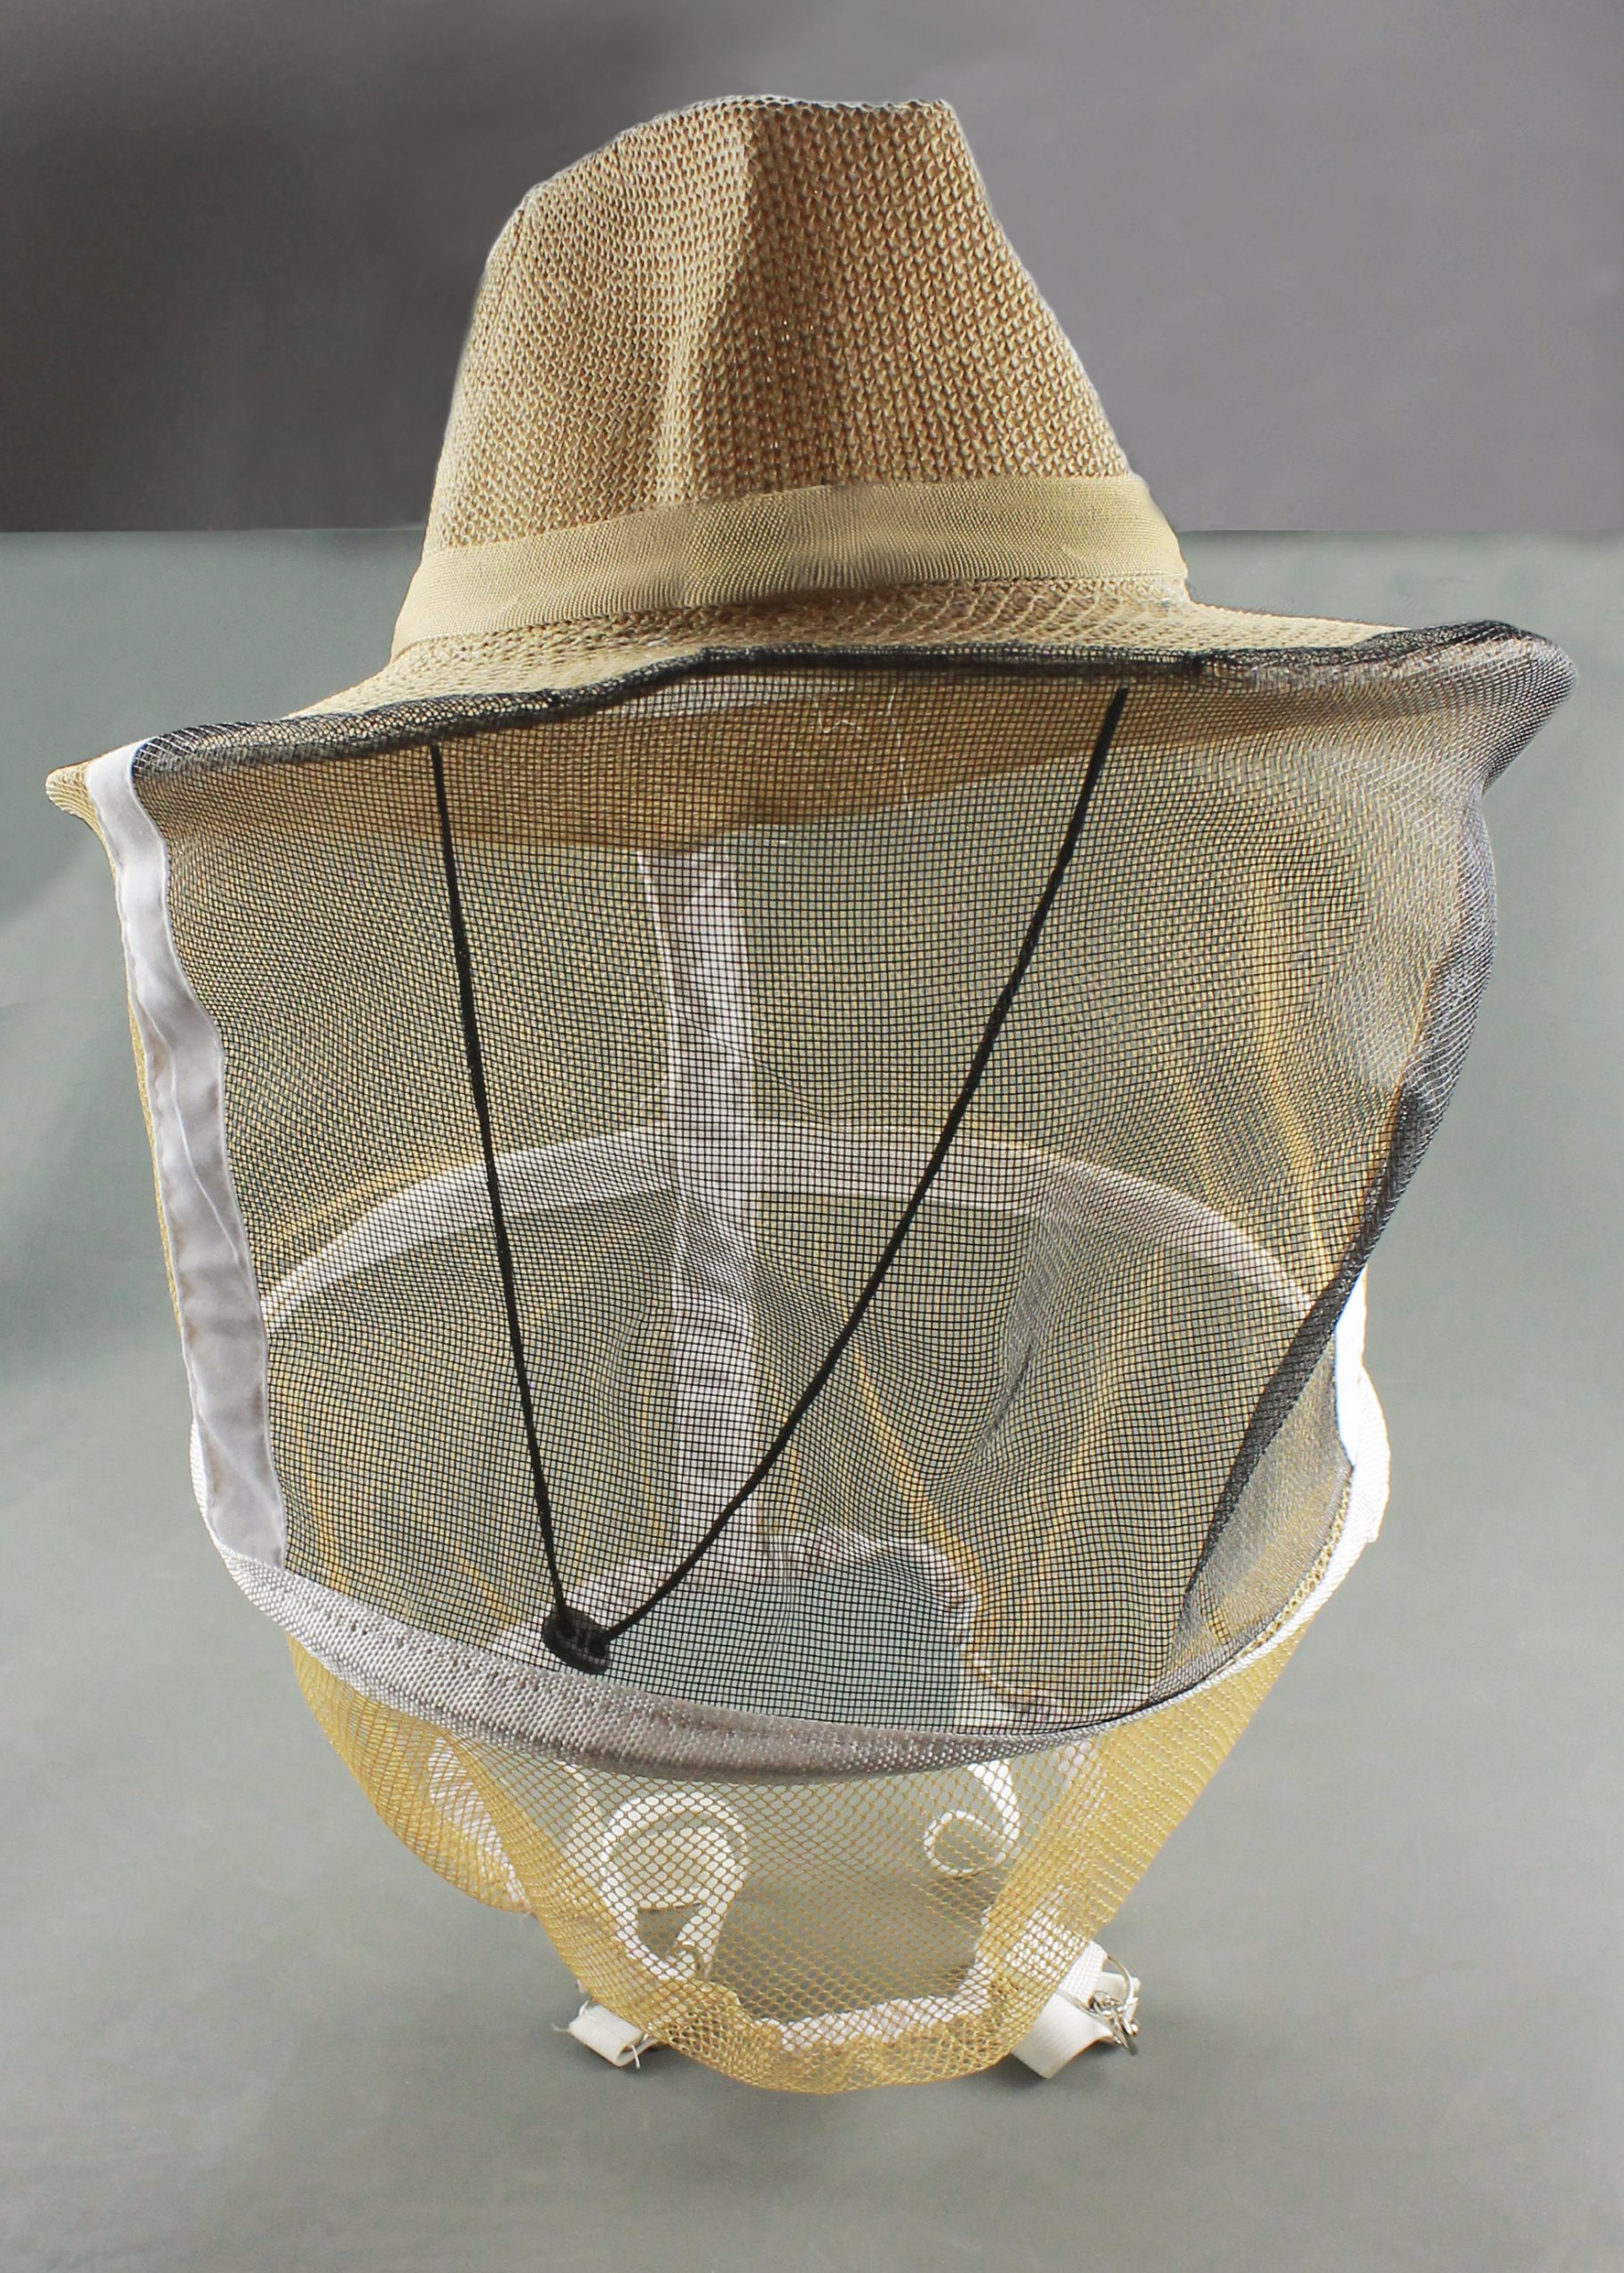 Beekeeper Cowboy Hat and Veil